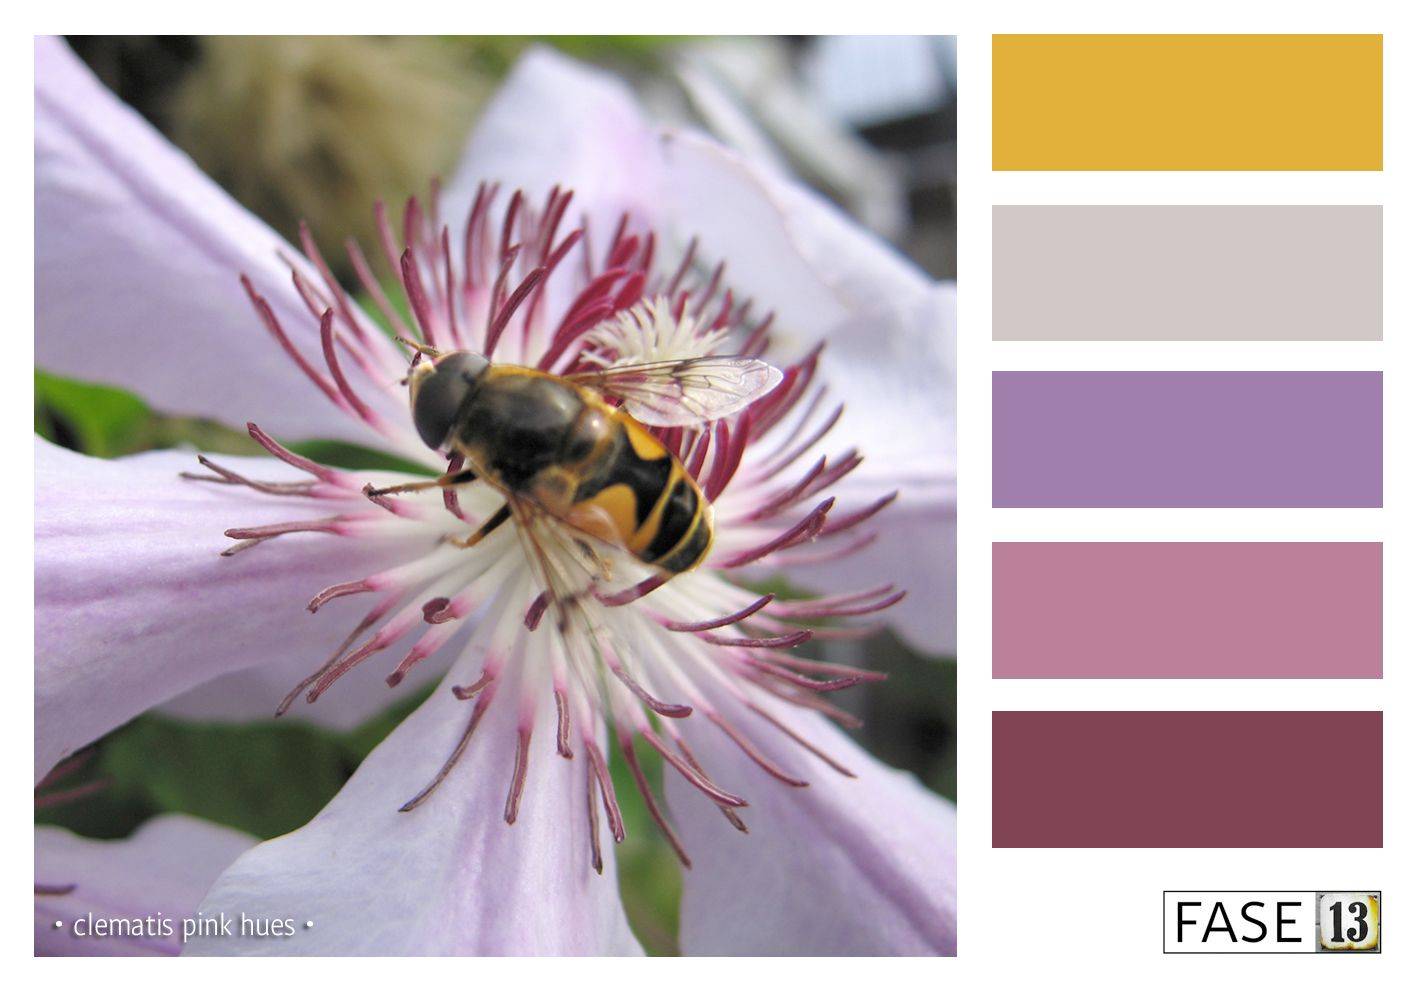 Colourinspiration kleurinspiratie clematis pink hues by fase